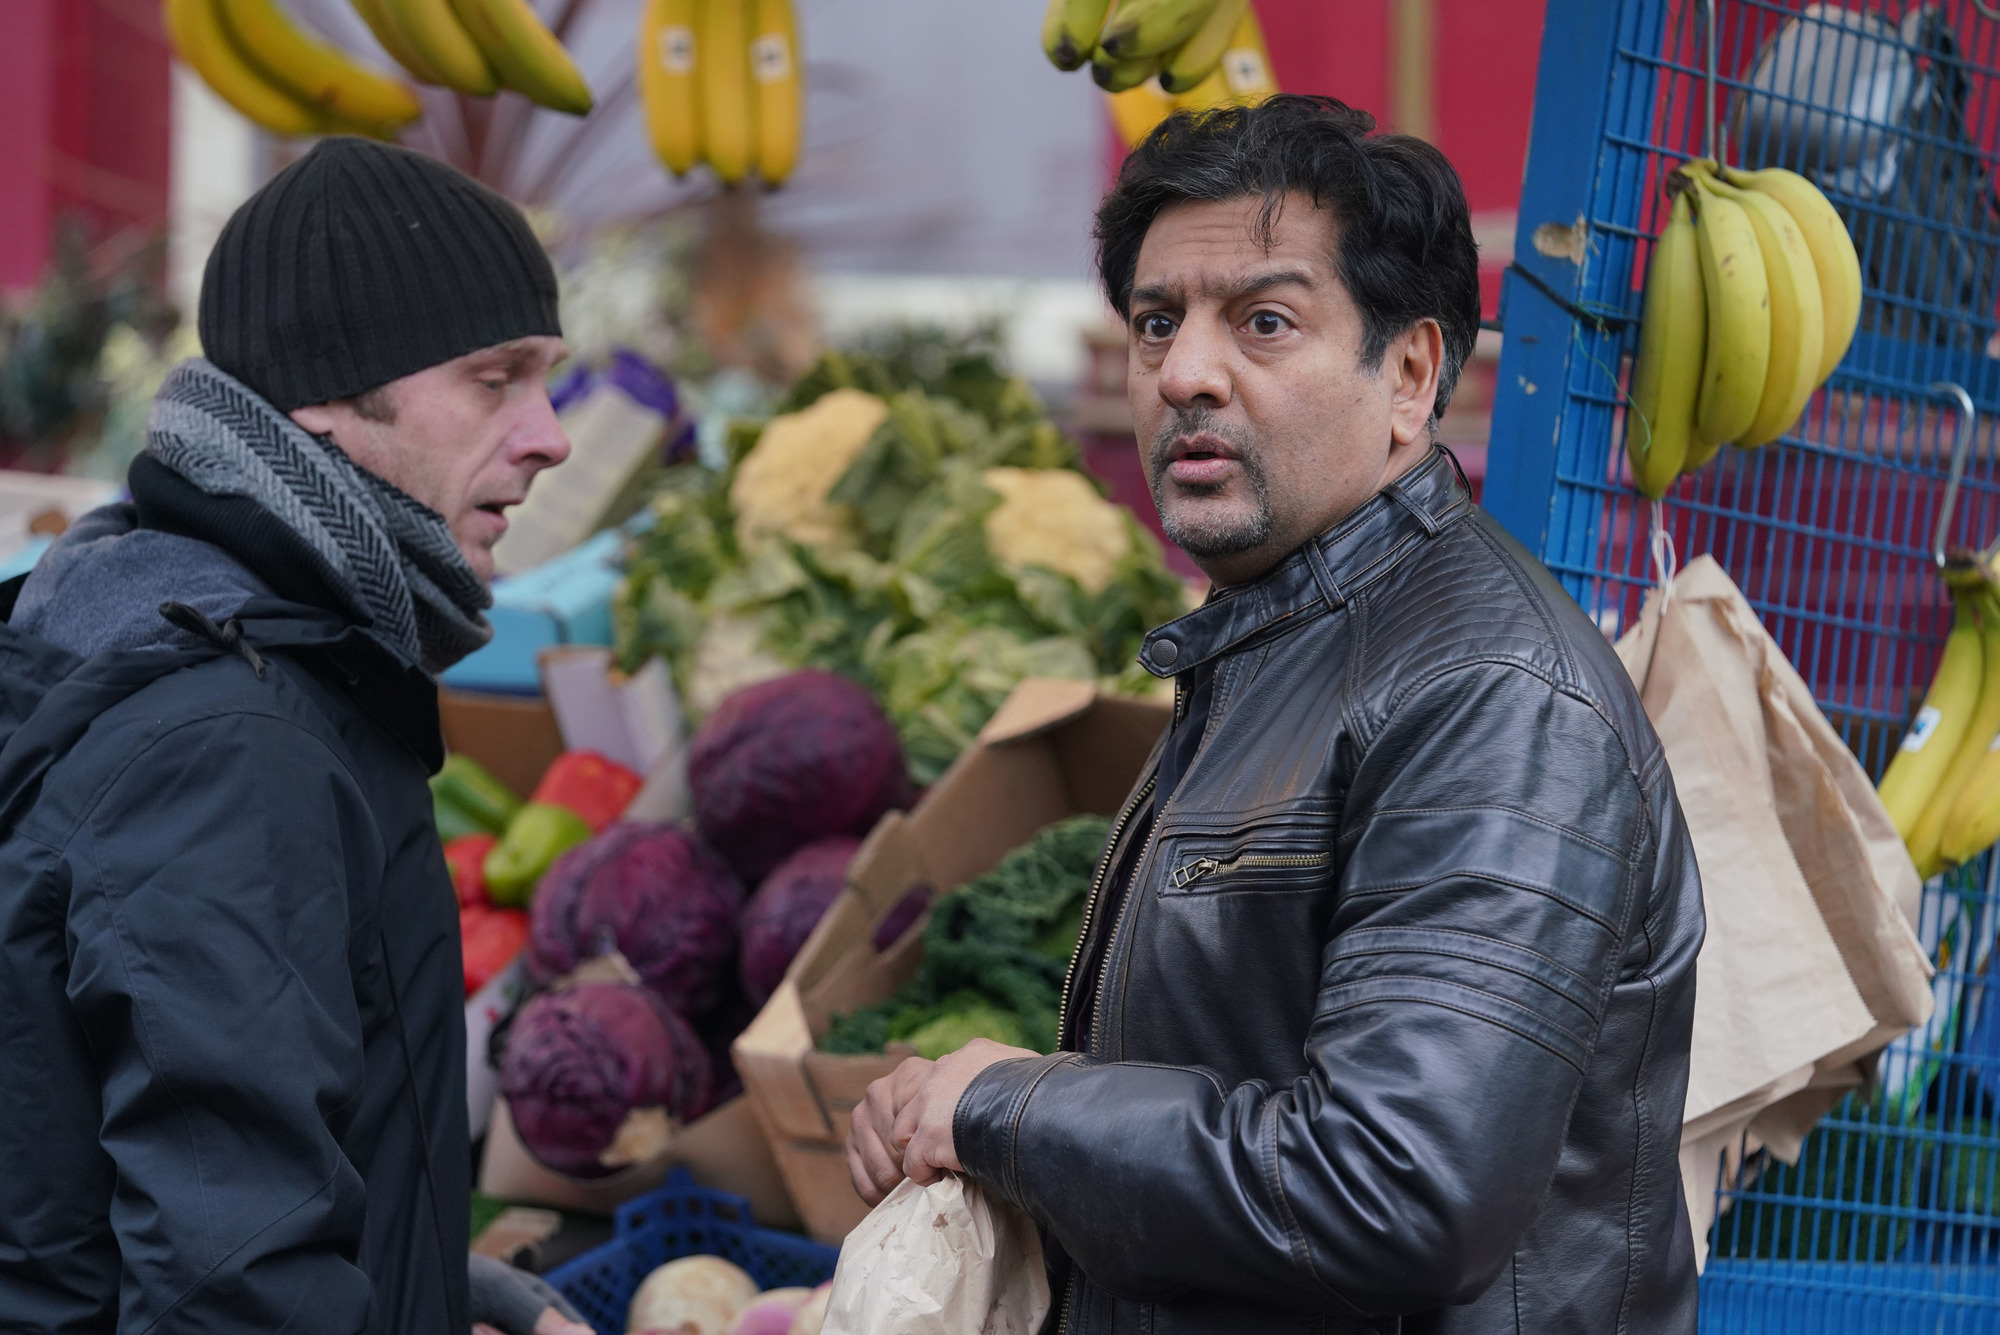 EastEnders spoilers: Masood Ahmed's exit storyline revealed as he prepares to leave the Square